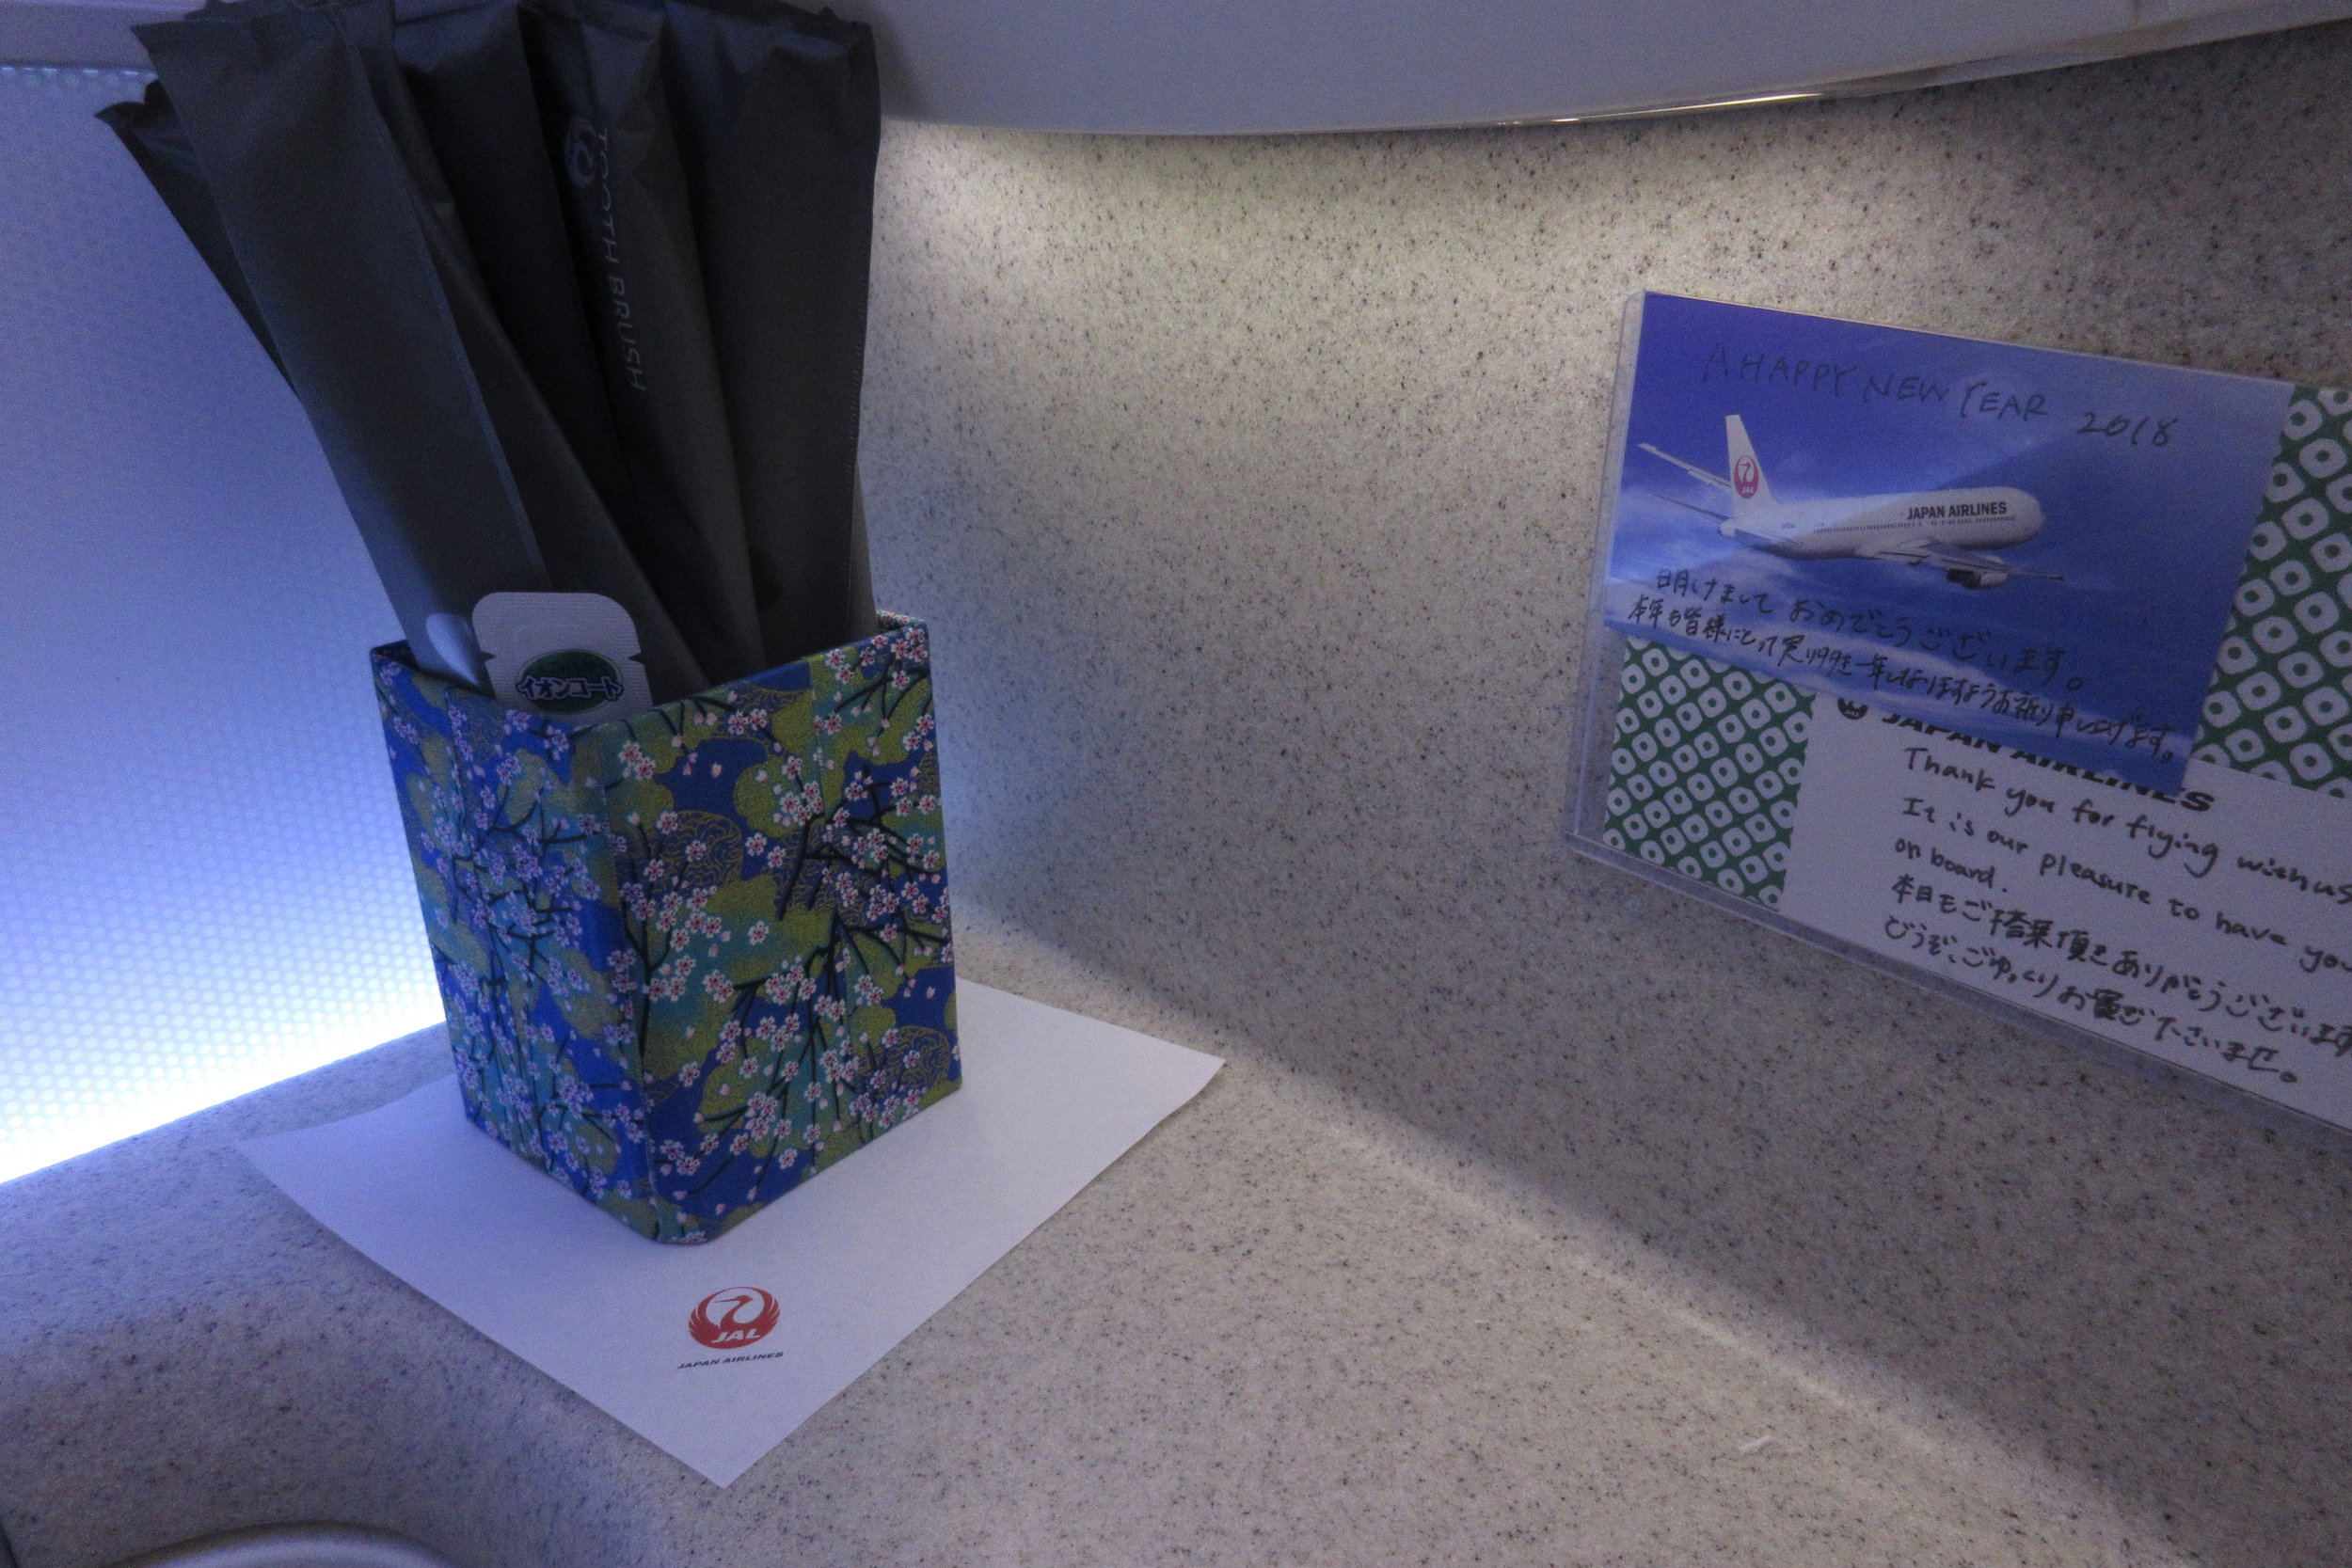 Japan Airlines business class – Amenities and handwritten note